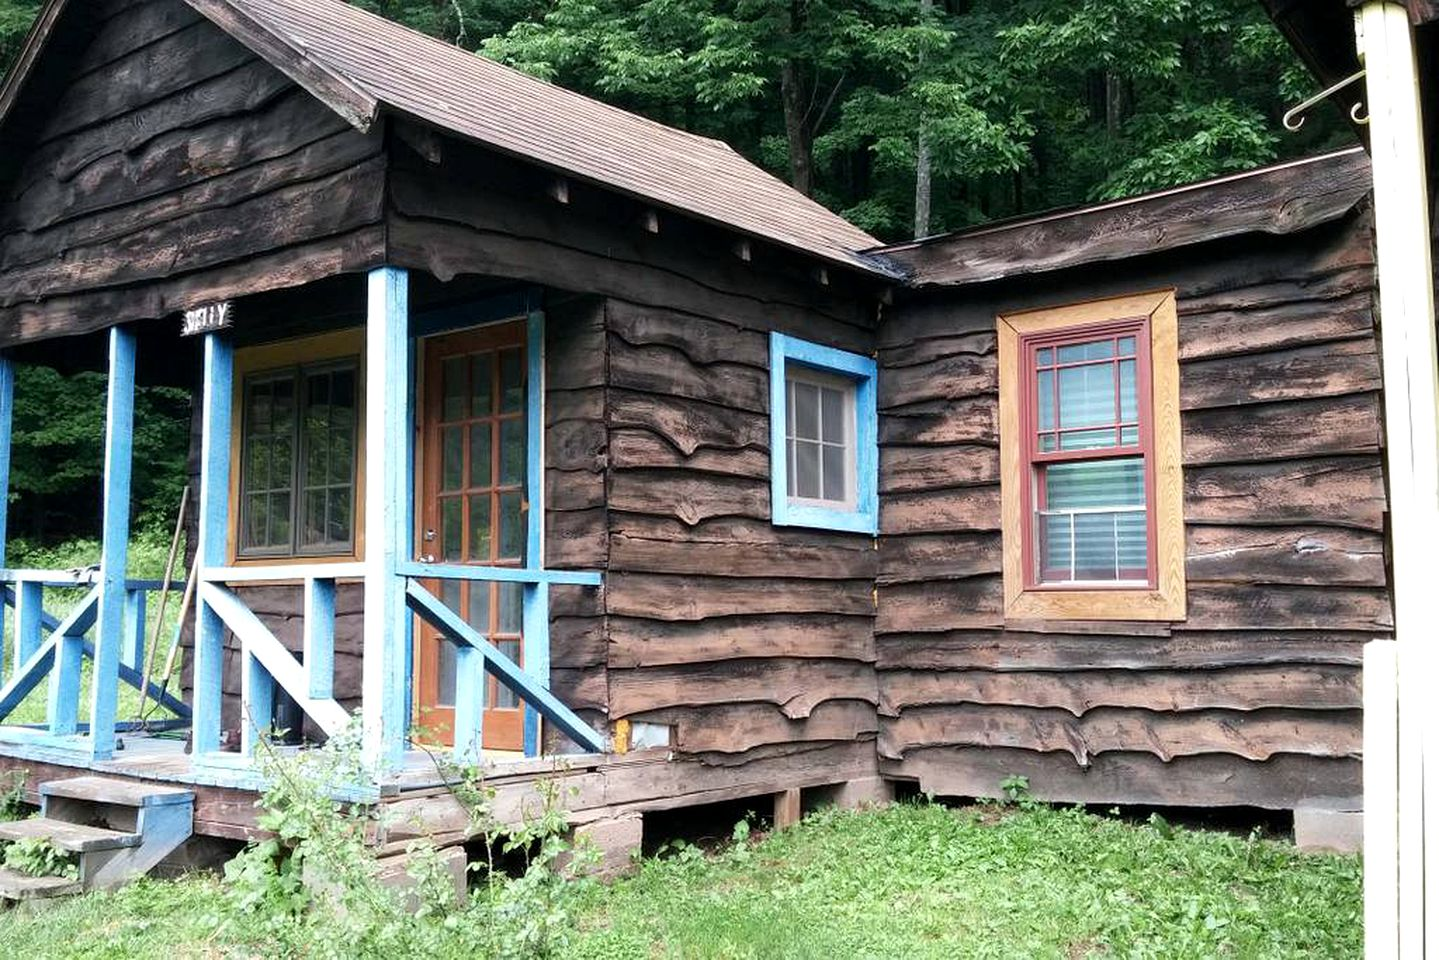 Cabins (Shandaken, New York, United States)